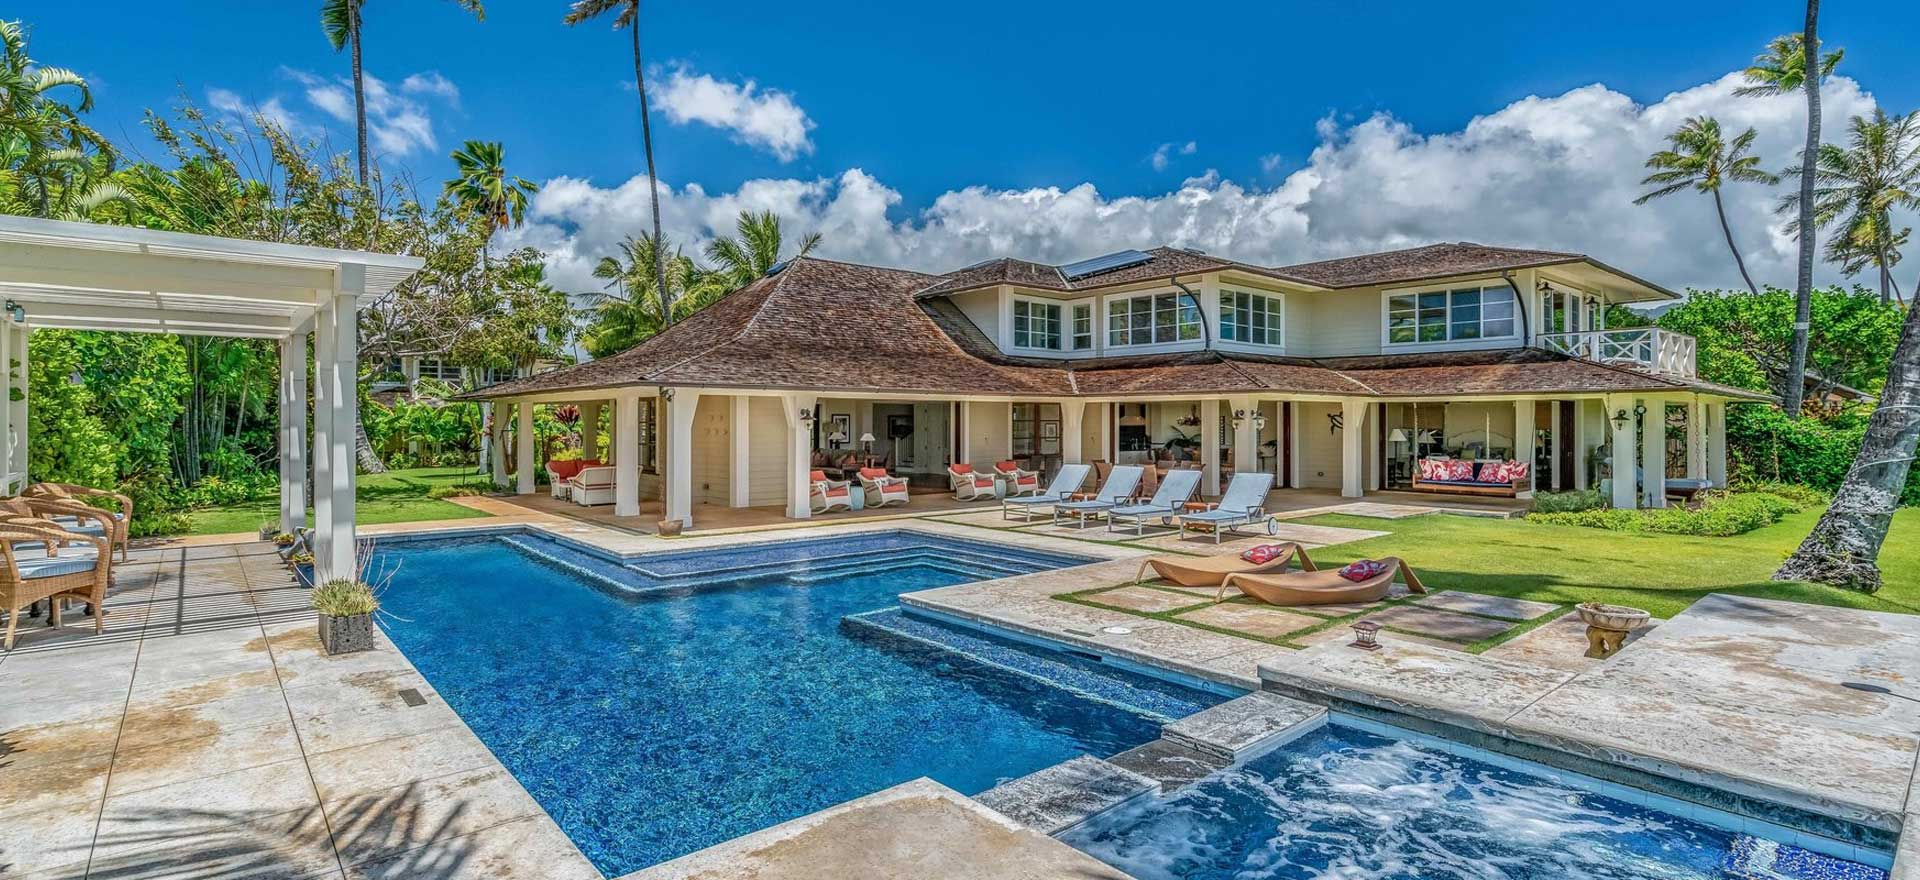 An image of the pool and back of the Coral Reef villa for rent